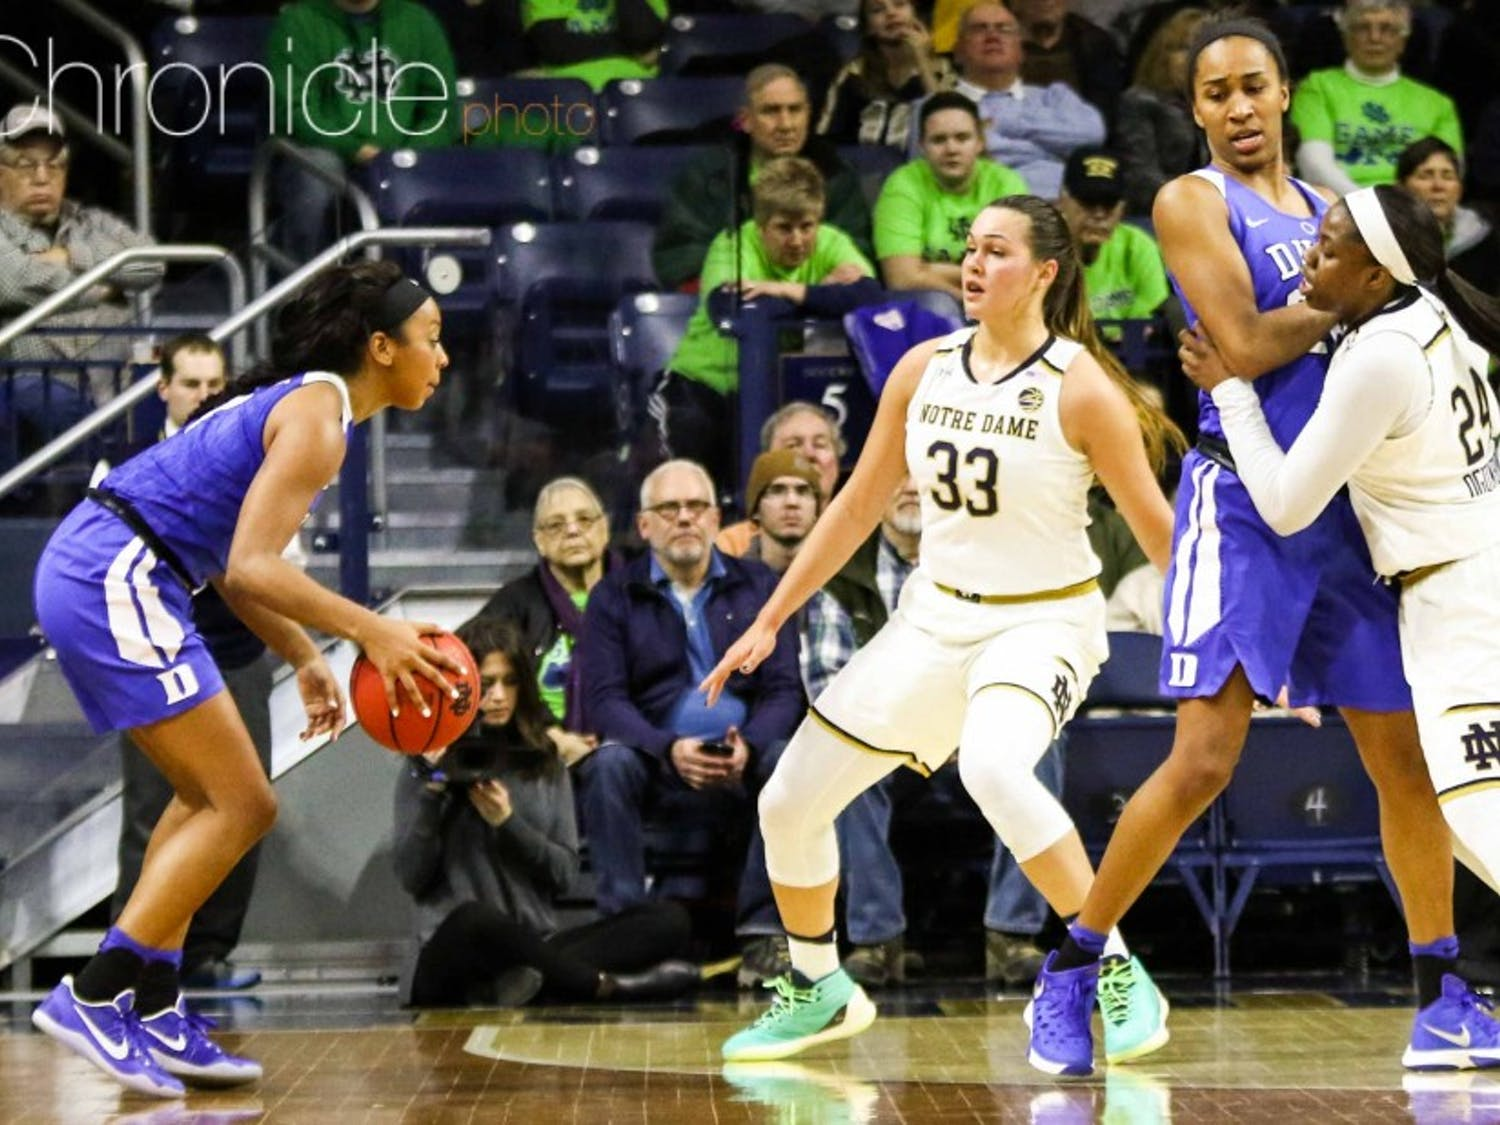 Lexie Brown scored 22 points and got her team off to a hot start, but Notre Dame swarmed the All-American late to take the Blue Devils out of their offense.